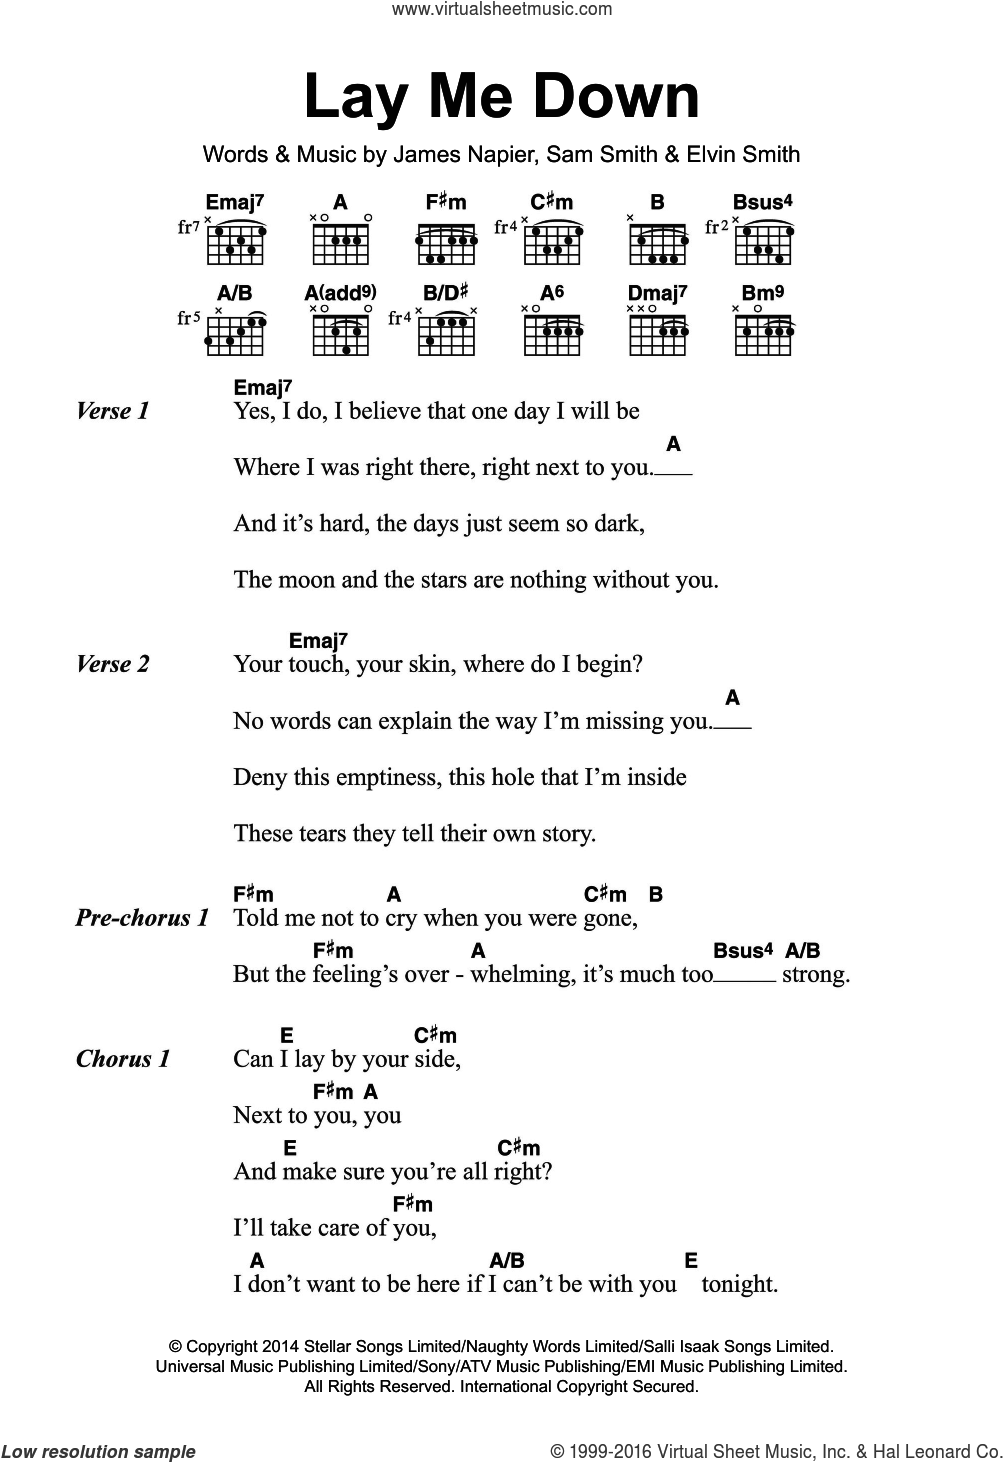 Lay Me Down sheet music for guitar (chords) by James Napier, Elvin Smith and Sam Smith. Score Image Preview.